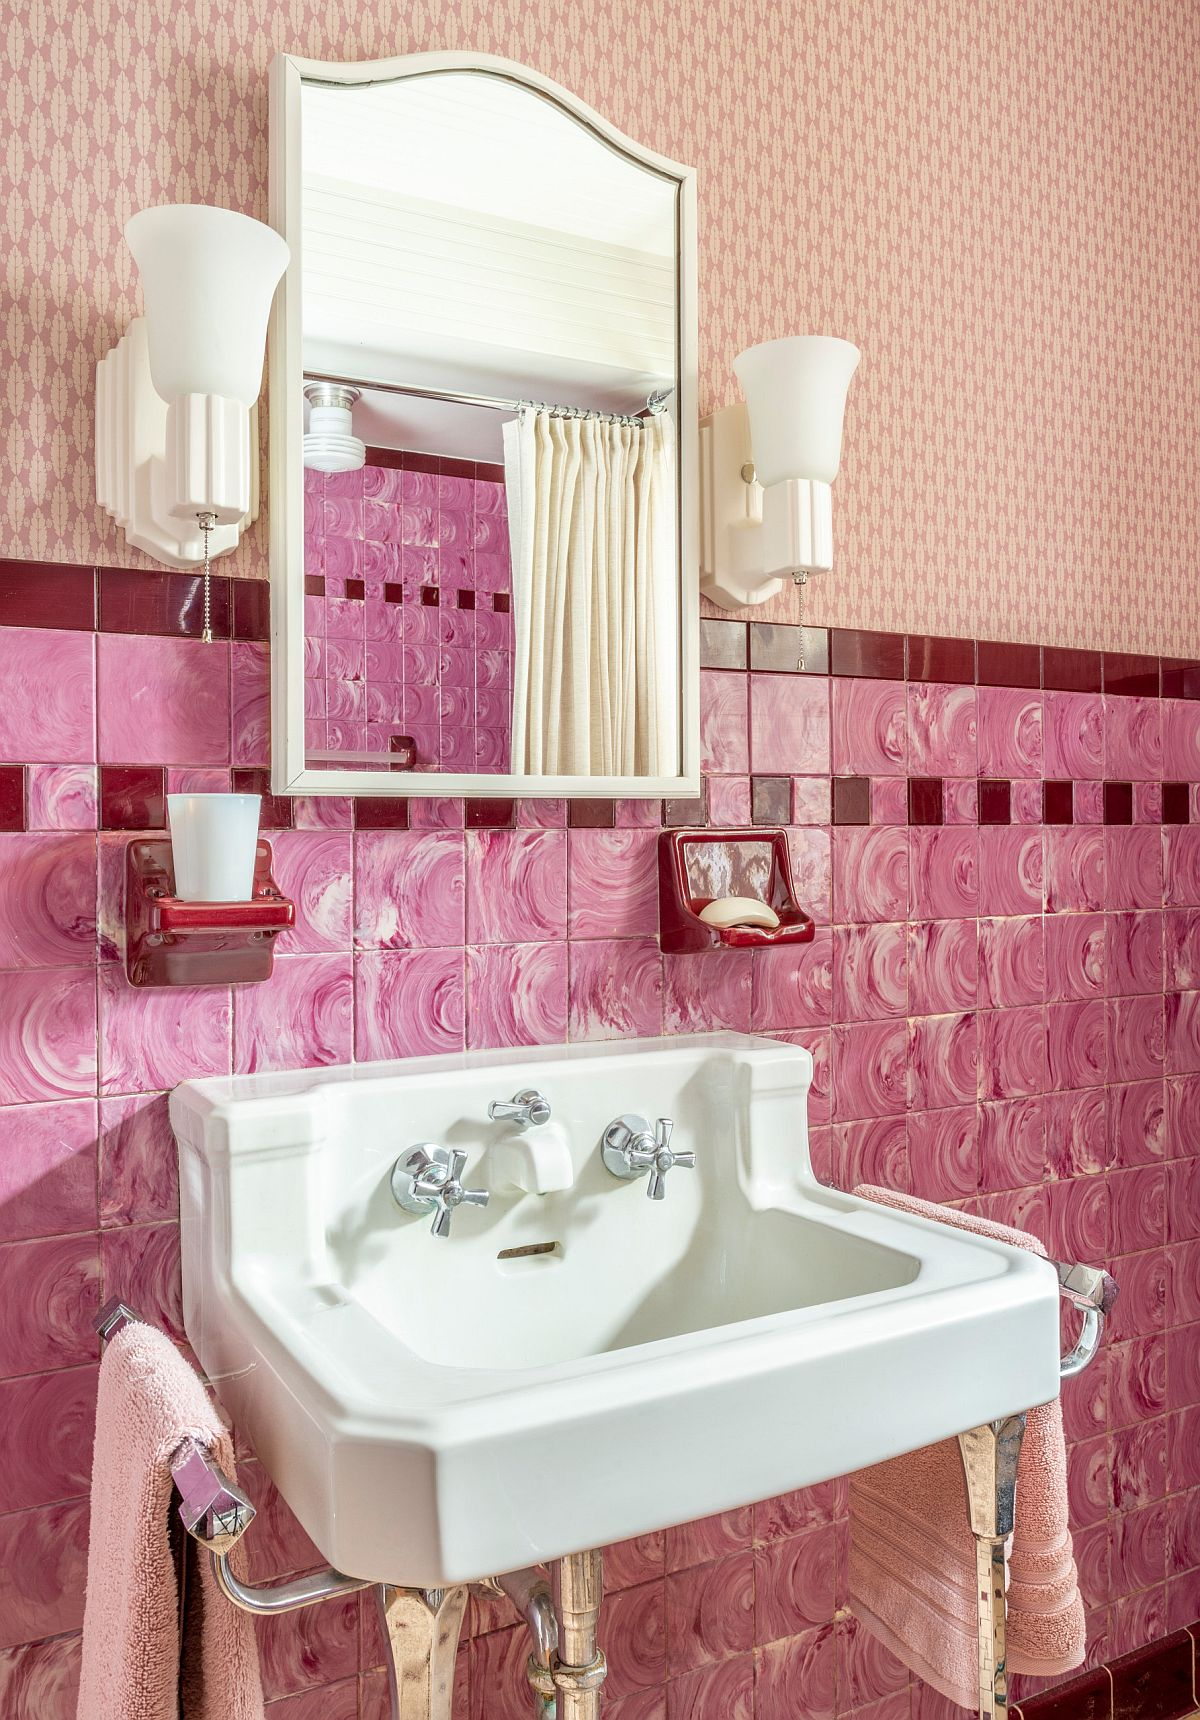 Pink tiles on the wall along with wall-mounted sink for the traditional bathroom remodel